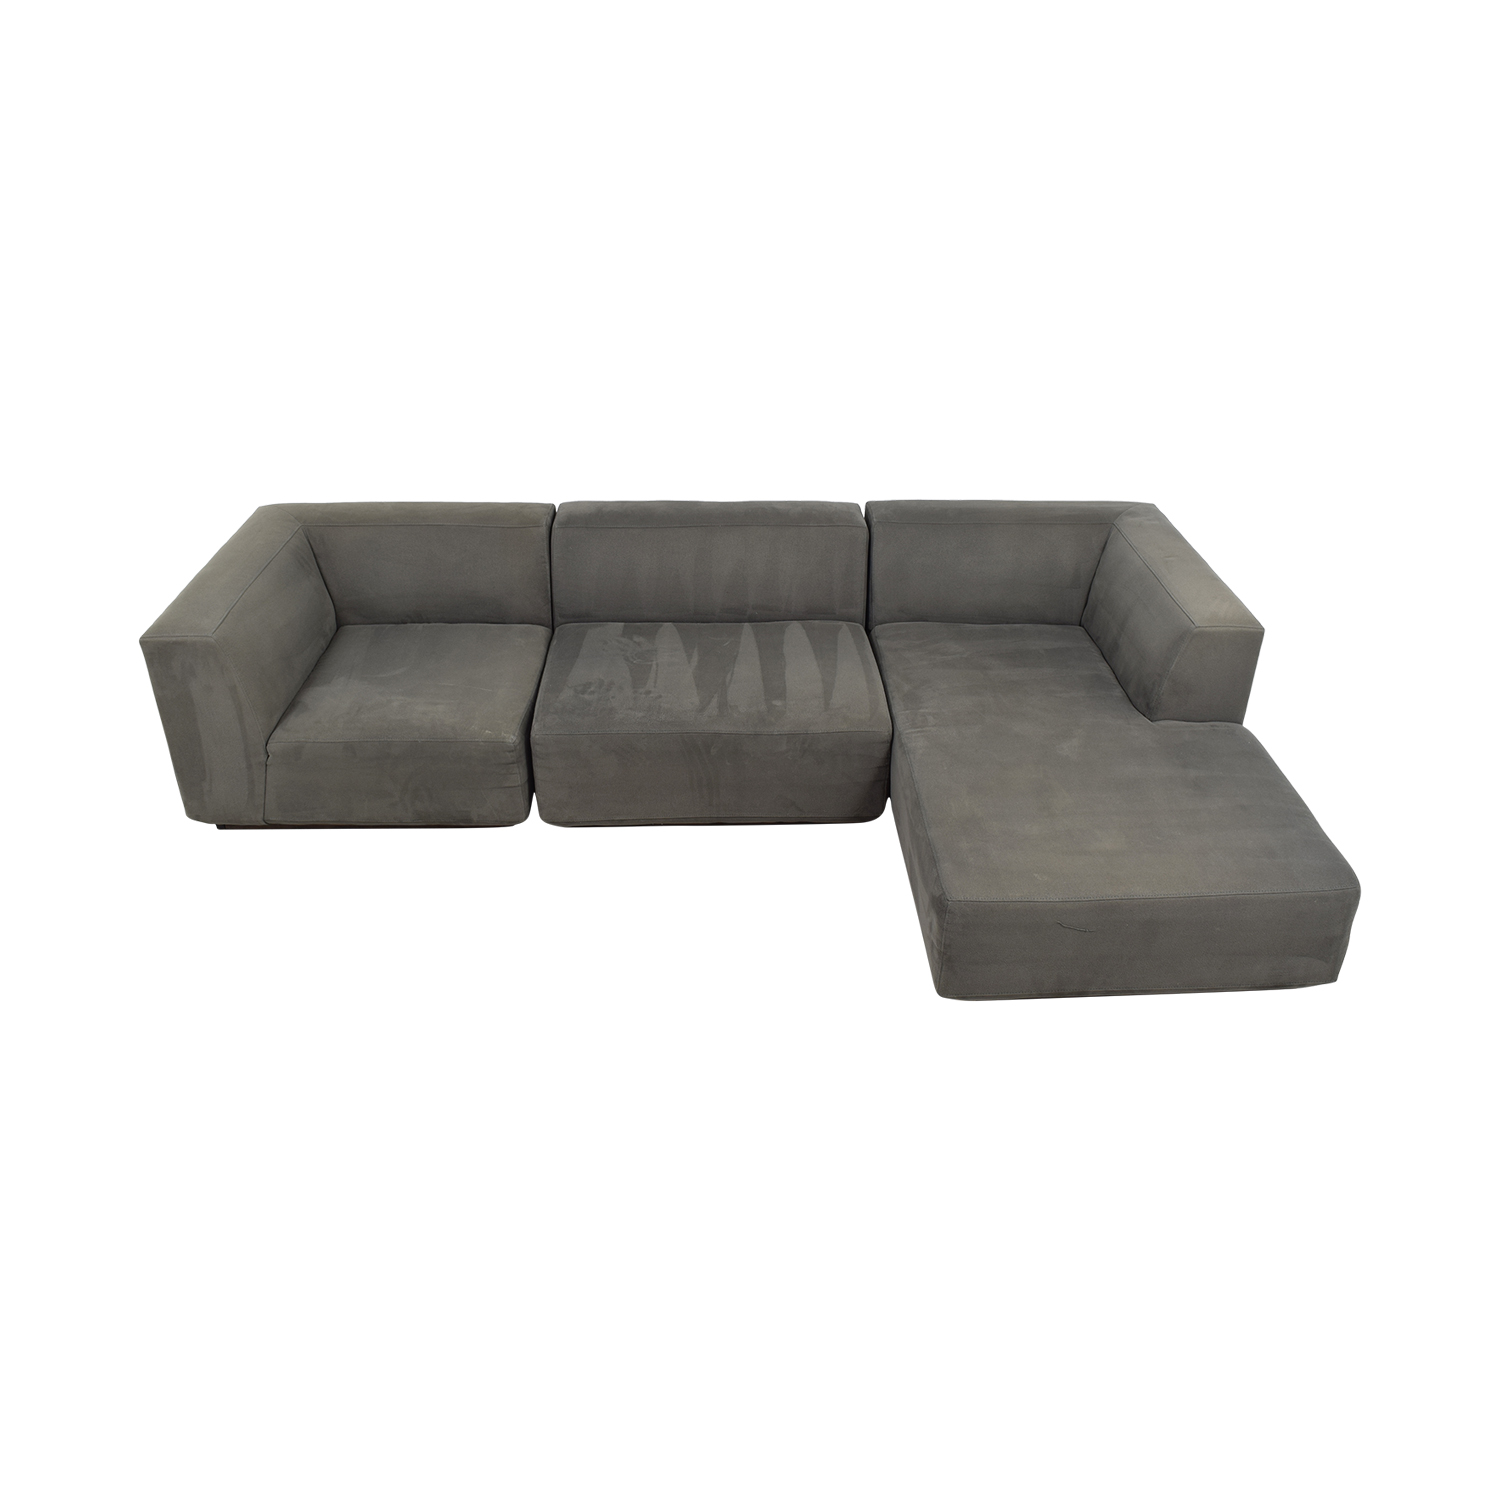 West Elm West Elm Baxter Sectional discount